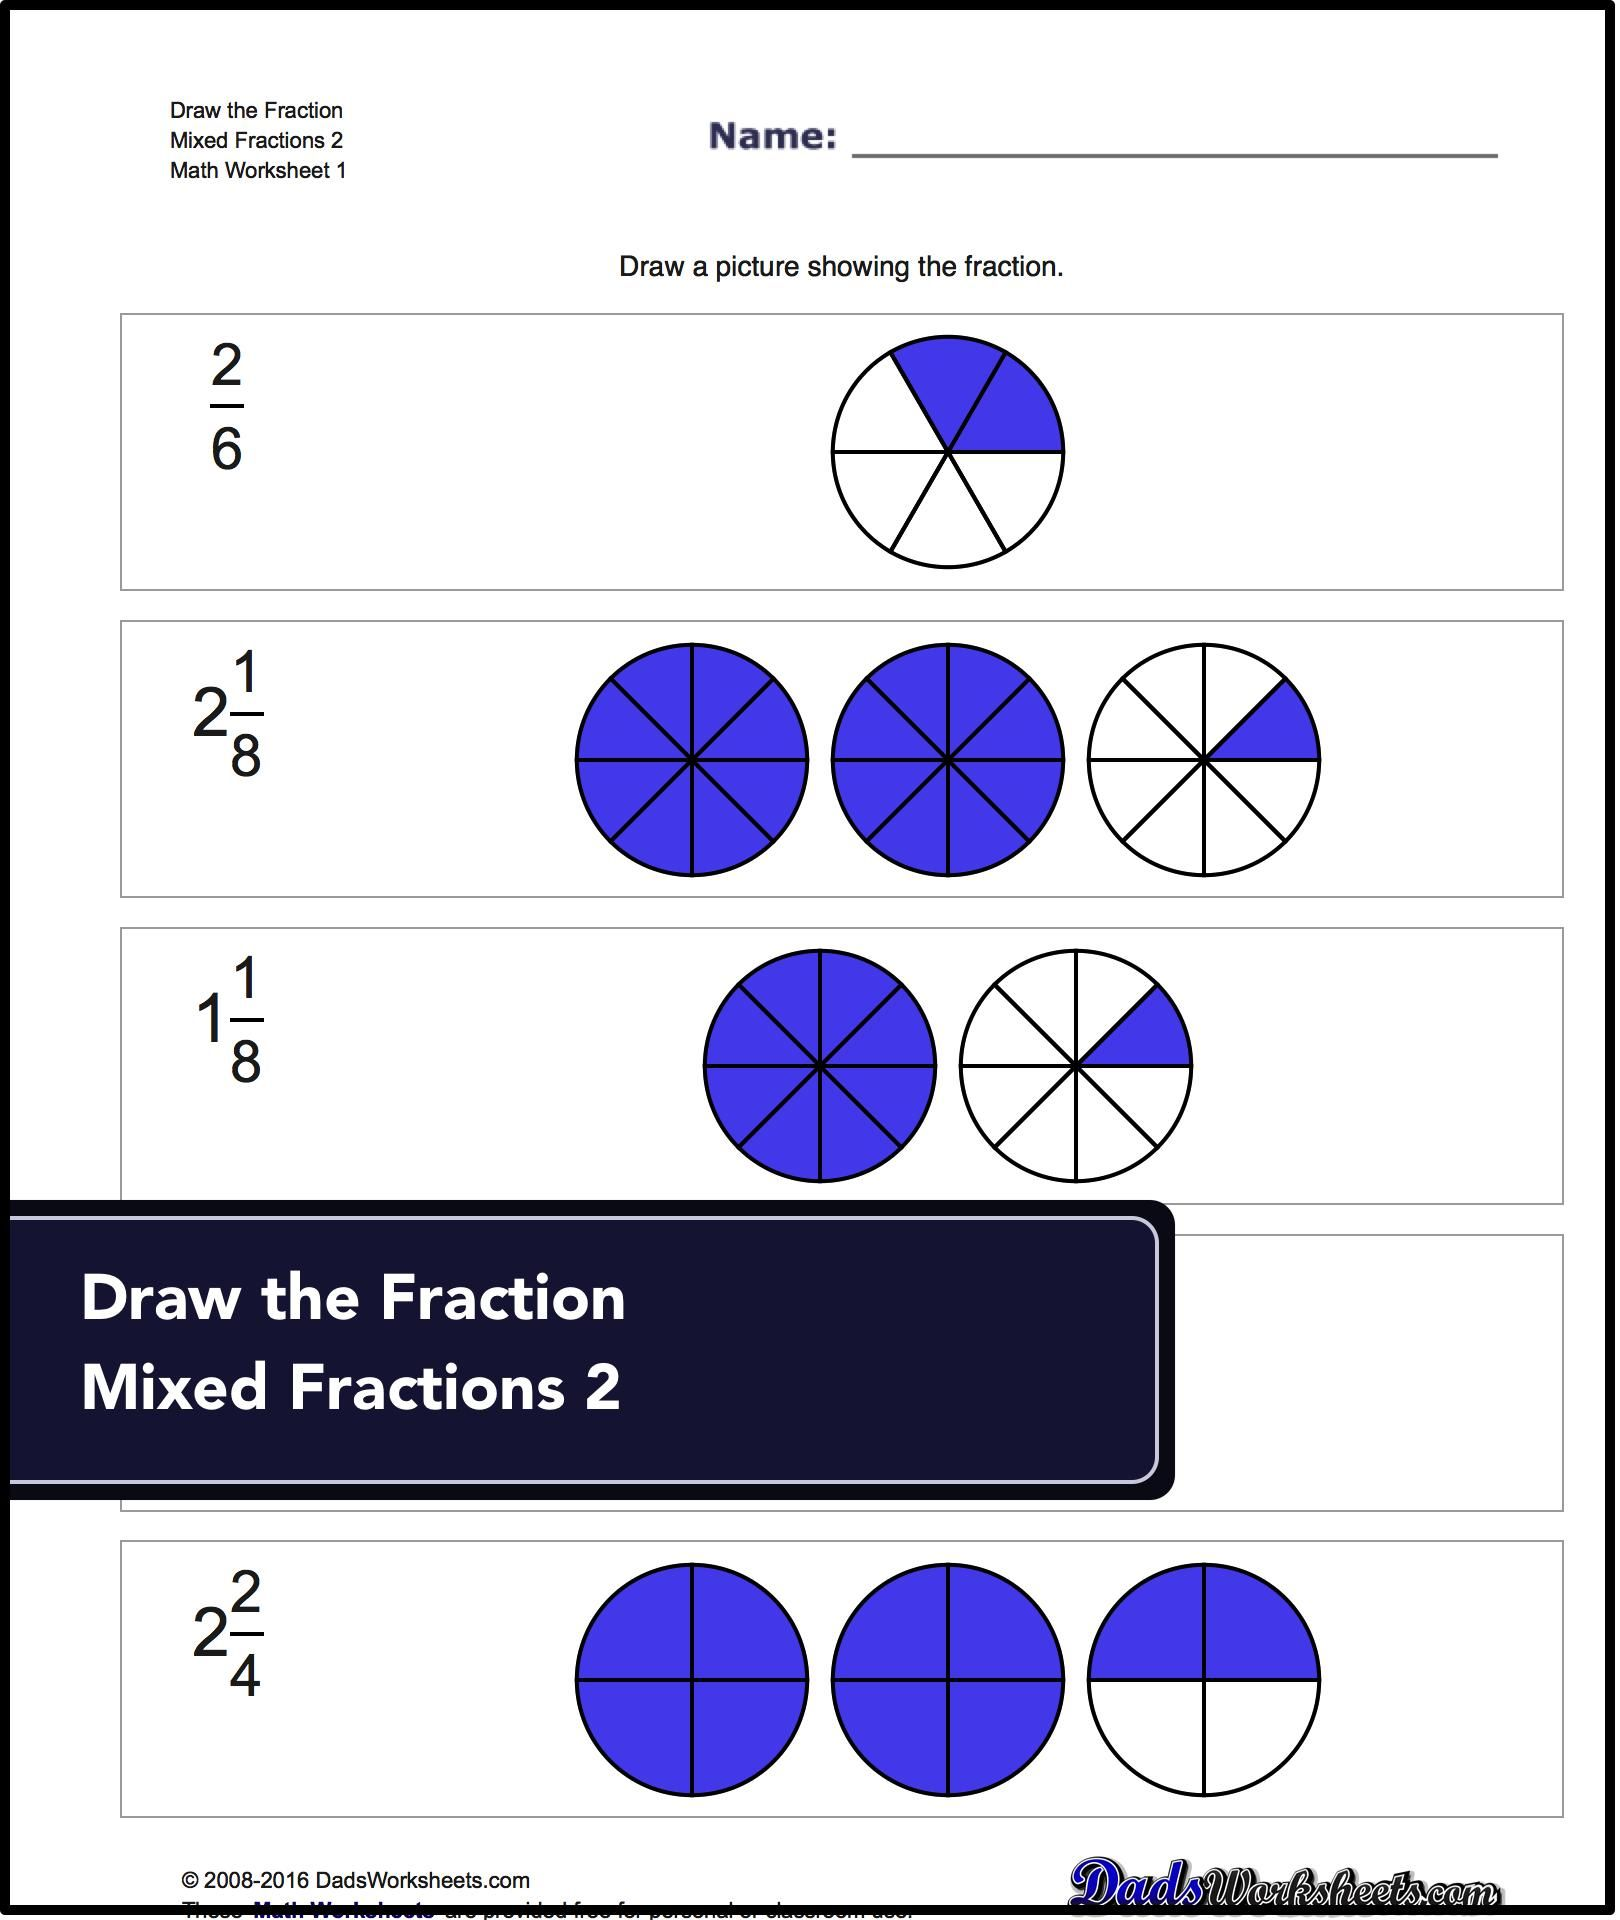 Pin By Dadsworksheets On Math Worksheets